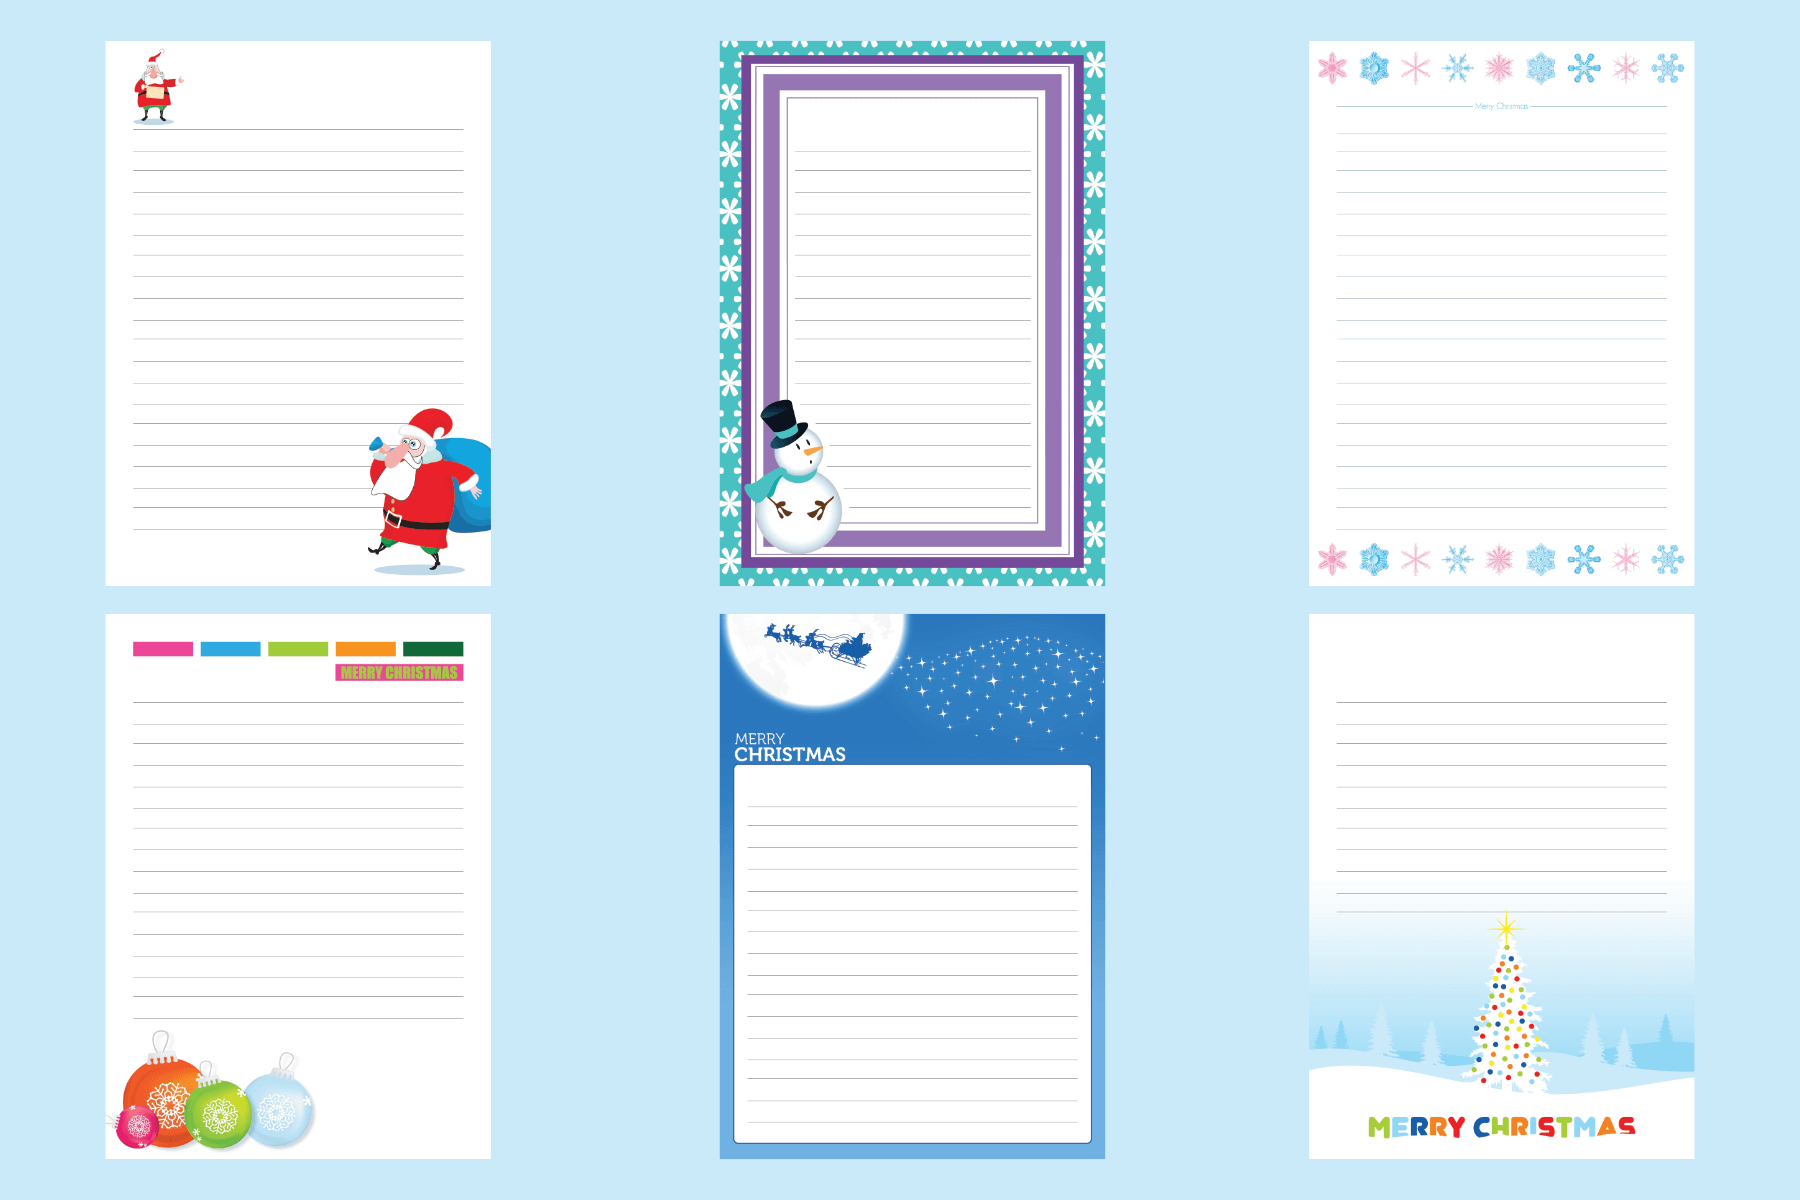 templates for christmas stories and letters